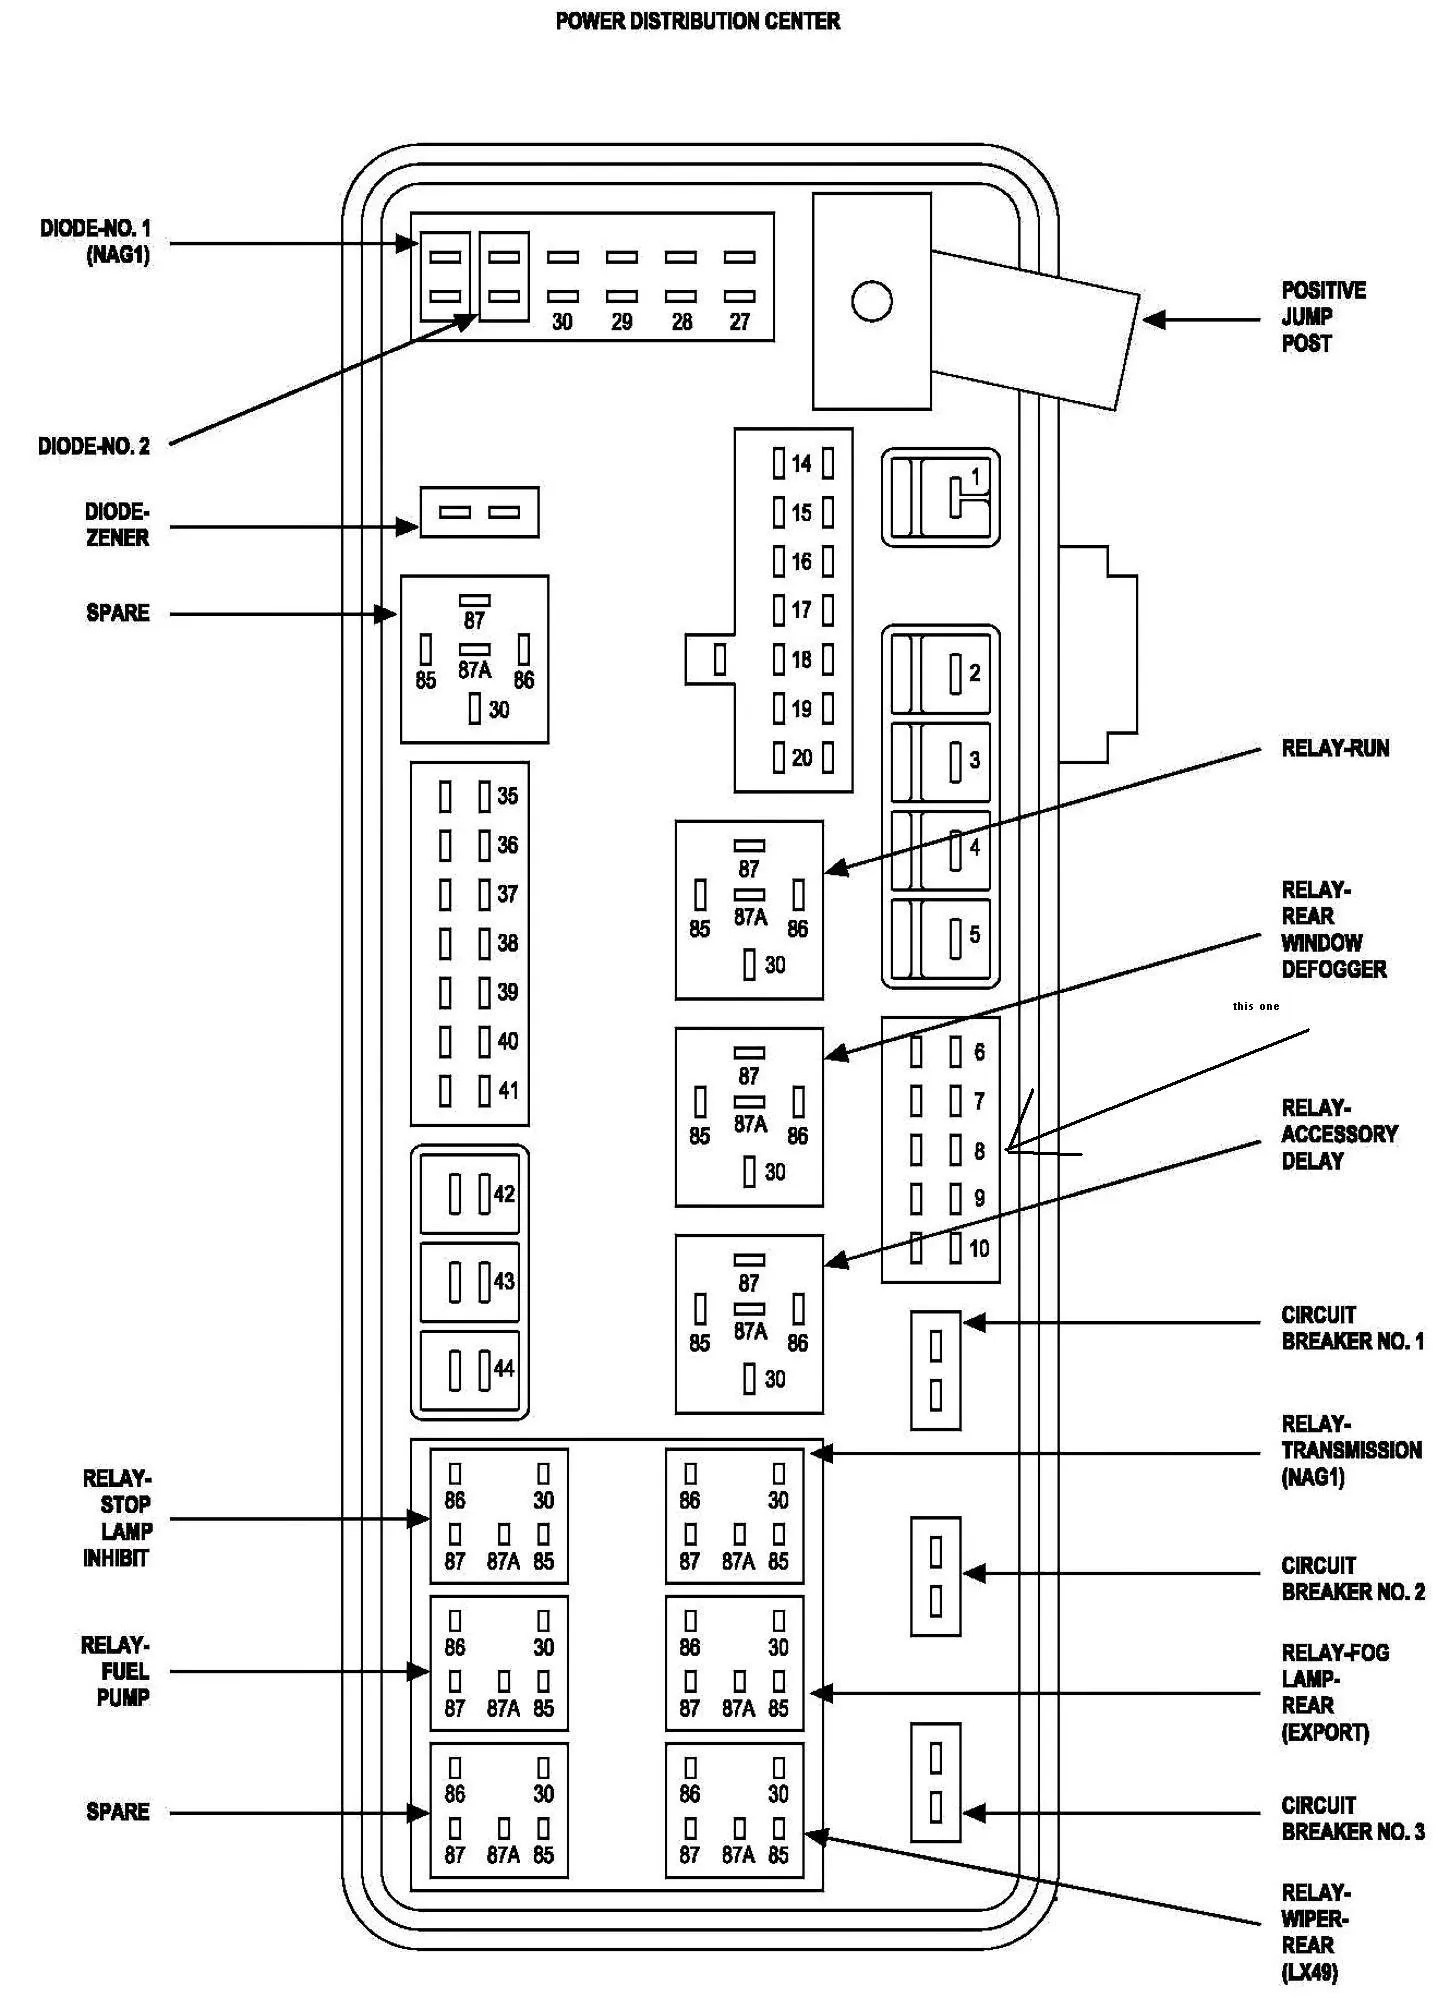 hight resolution of 2008 dodge caliber fuse box diagram wiring diagram todays toyota t100 fuse diagram 2009 nitro fuse